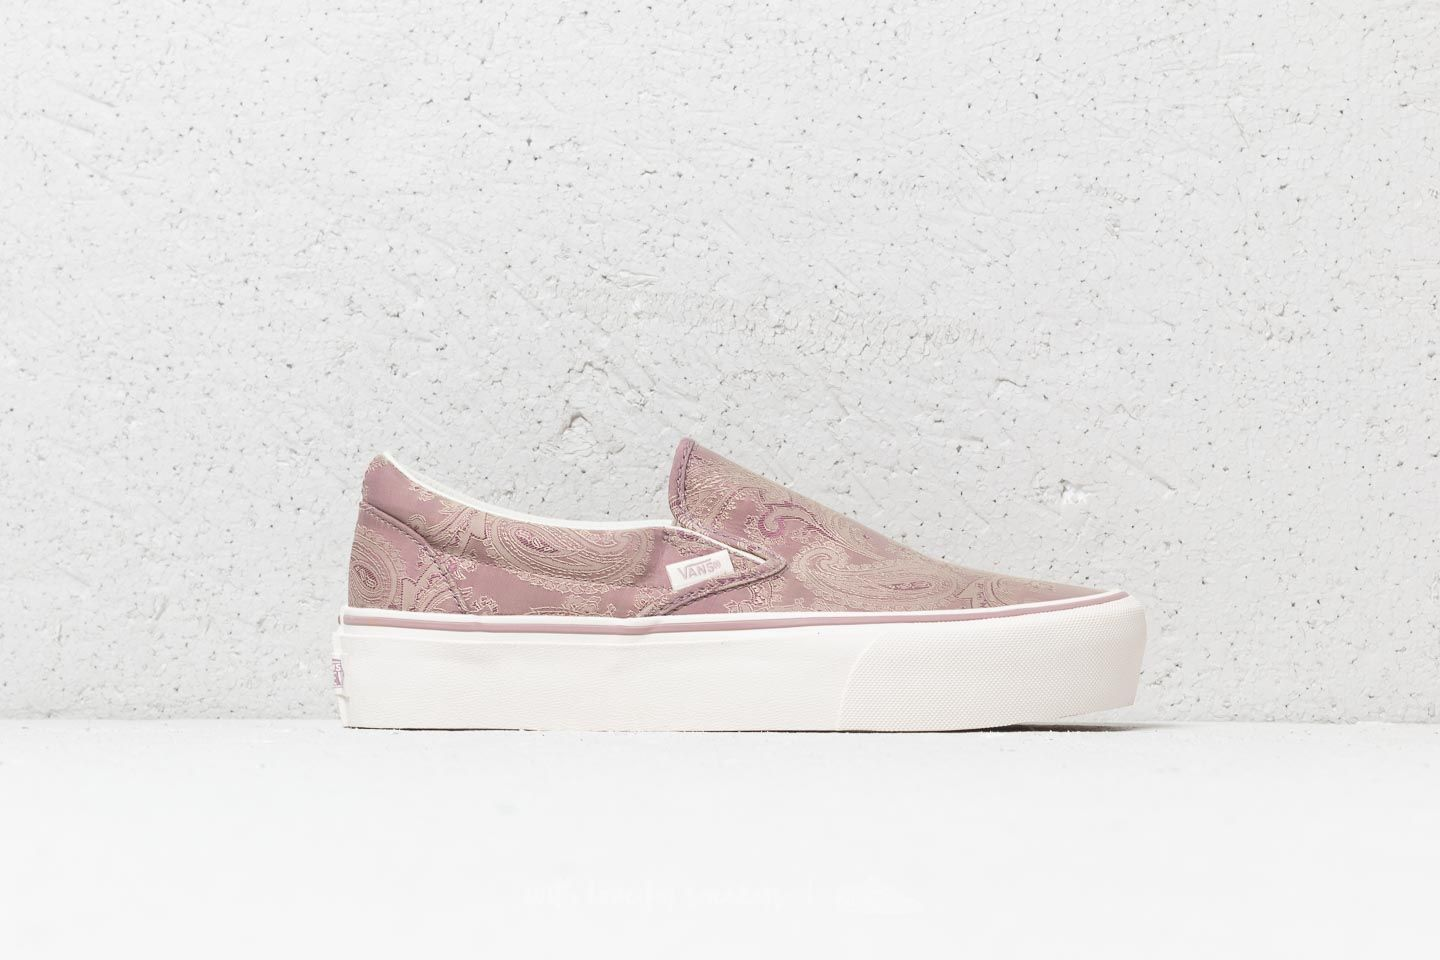 c7e47baf922b Vans Classic Slip-On (Satin Paisley) Mauve  Sno at a great price